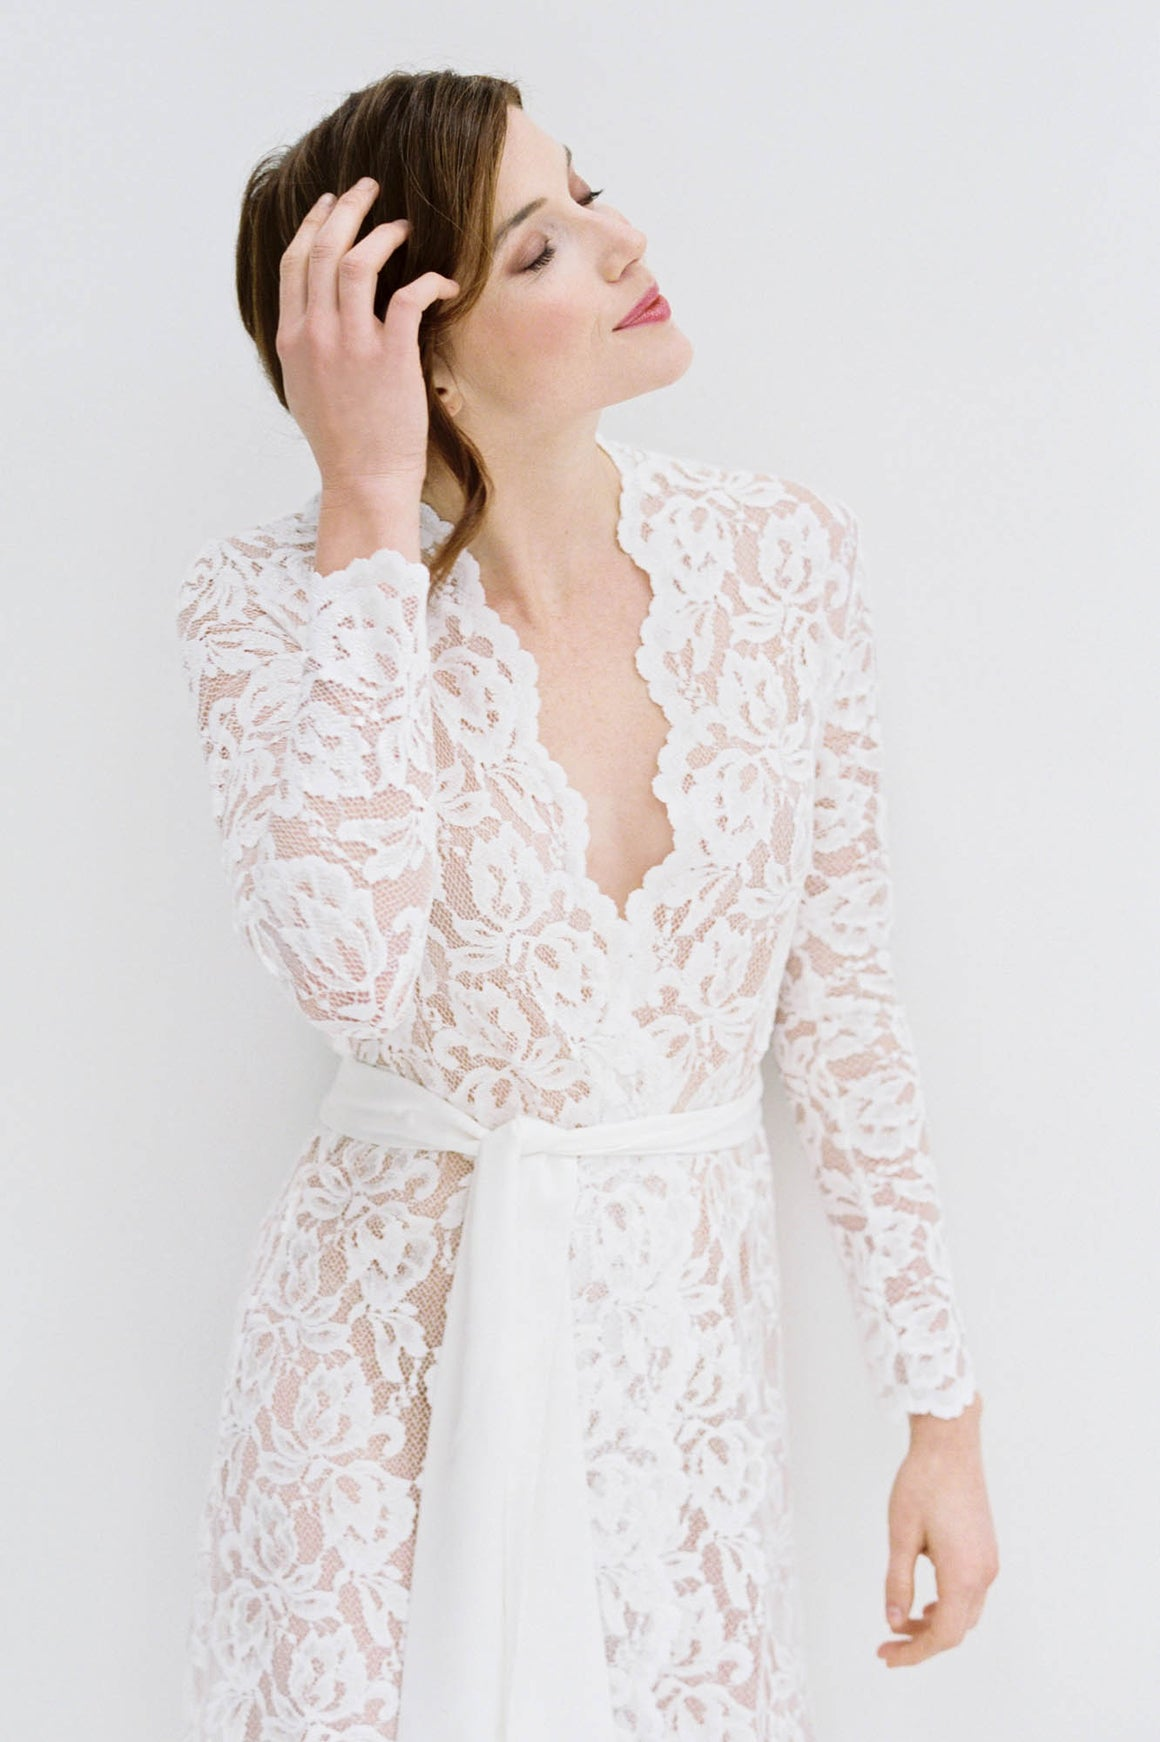 Lauren Stretch French Lace Robe